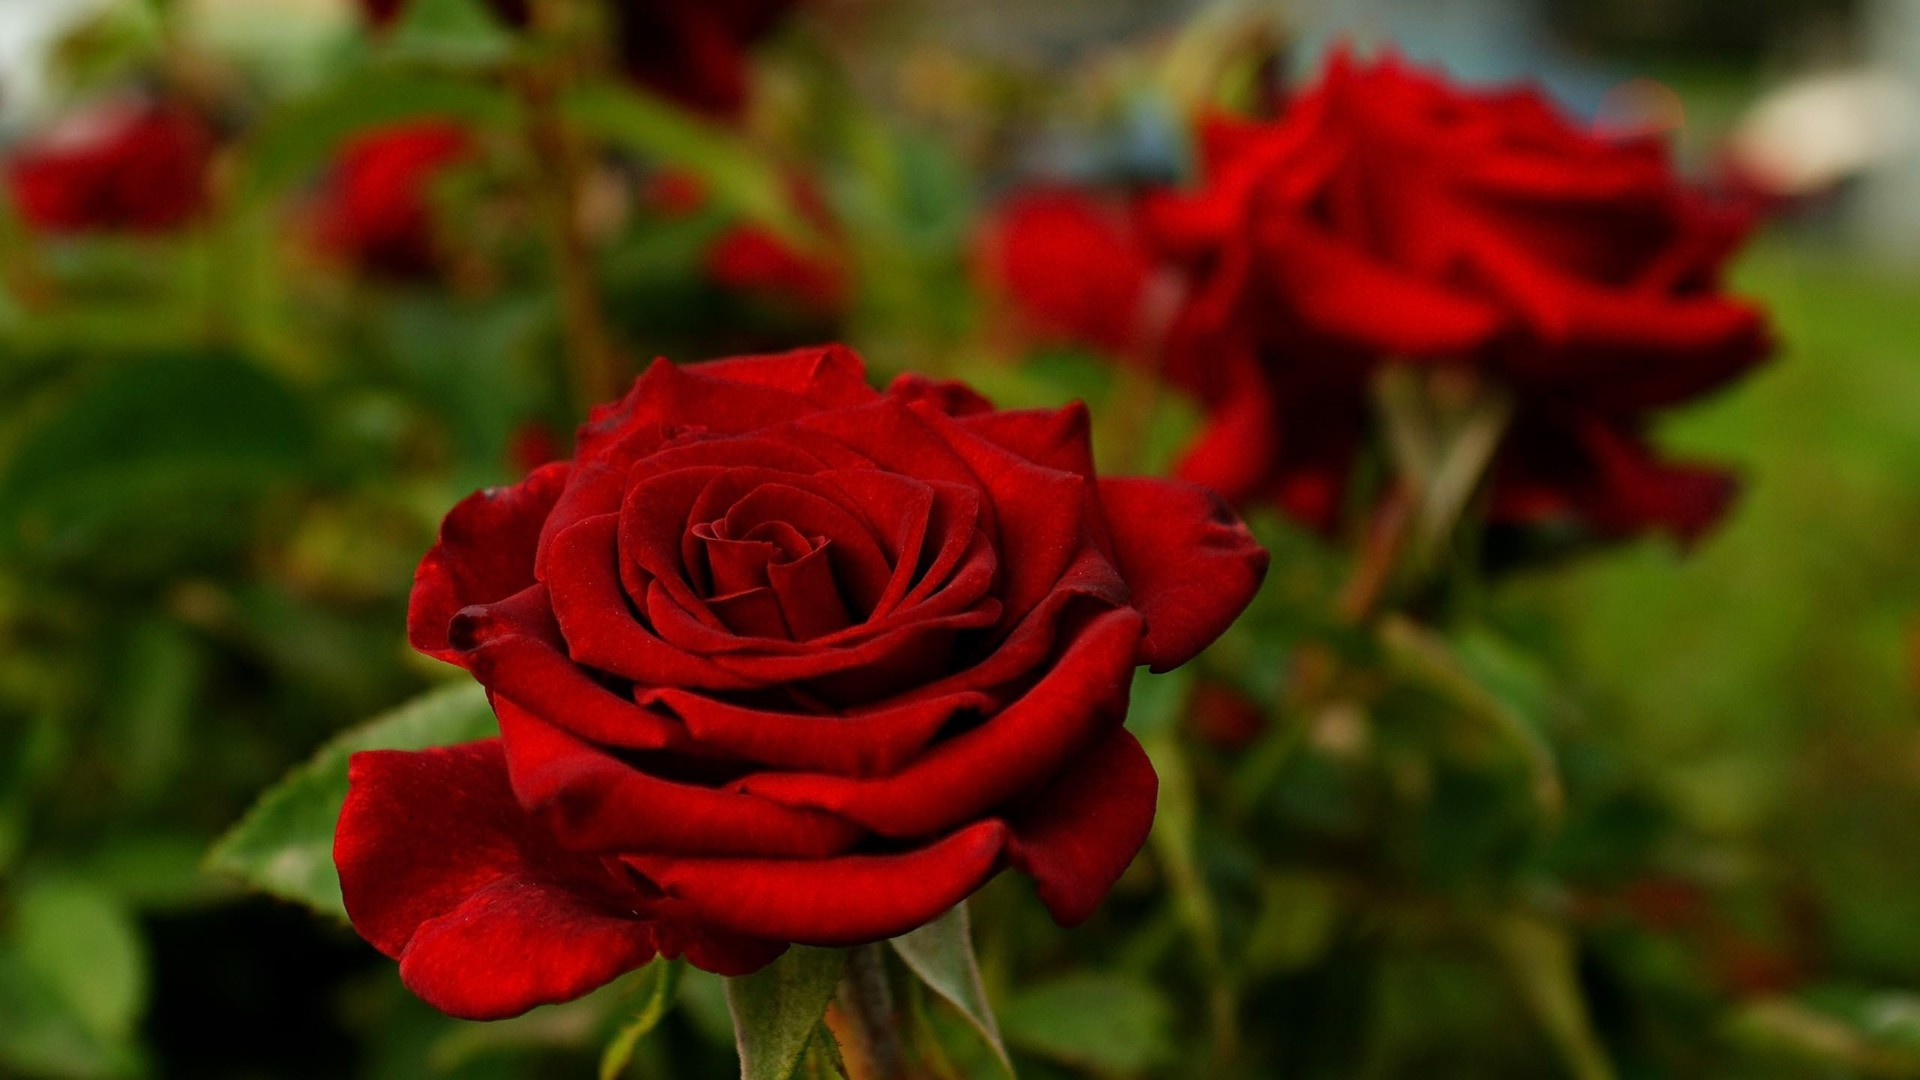 Red rose desktop backgrounds wallpaper hd pixelstalk net - Red rose flower hd images ...